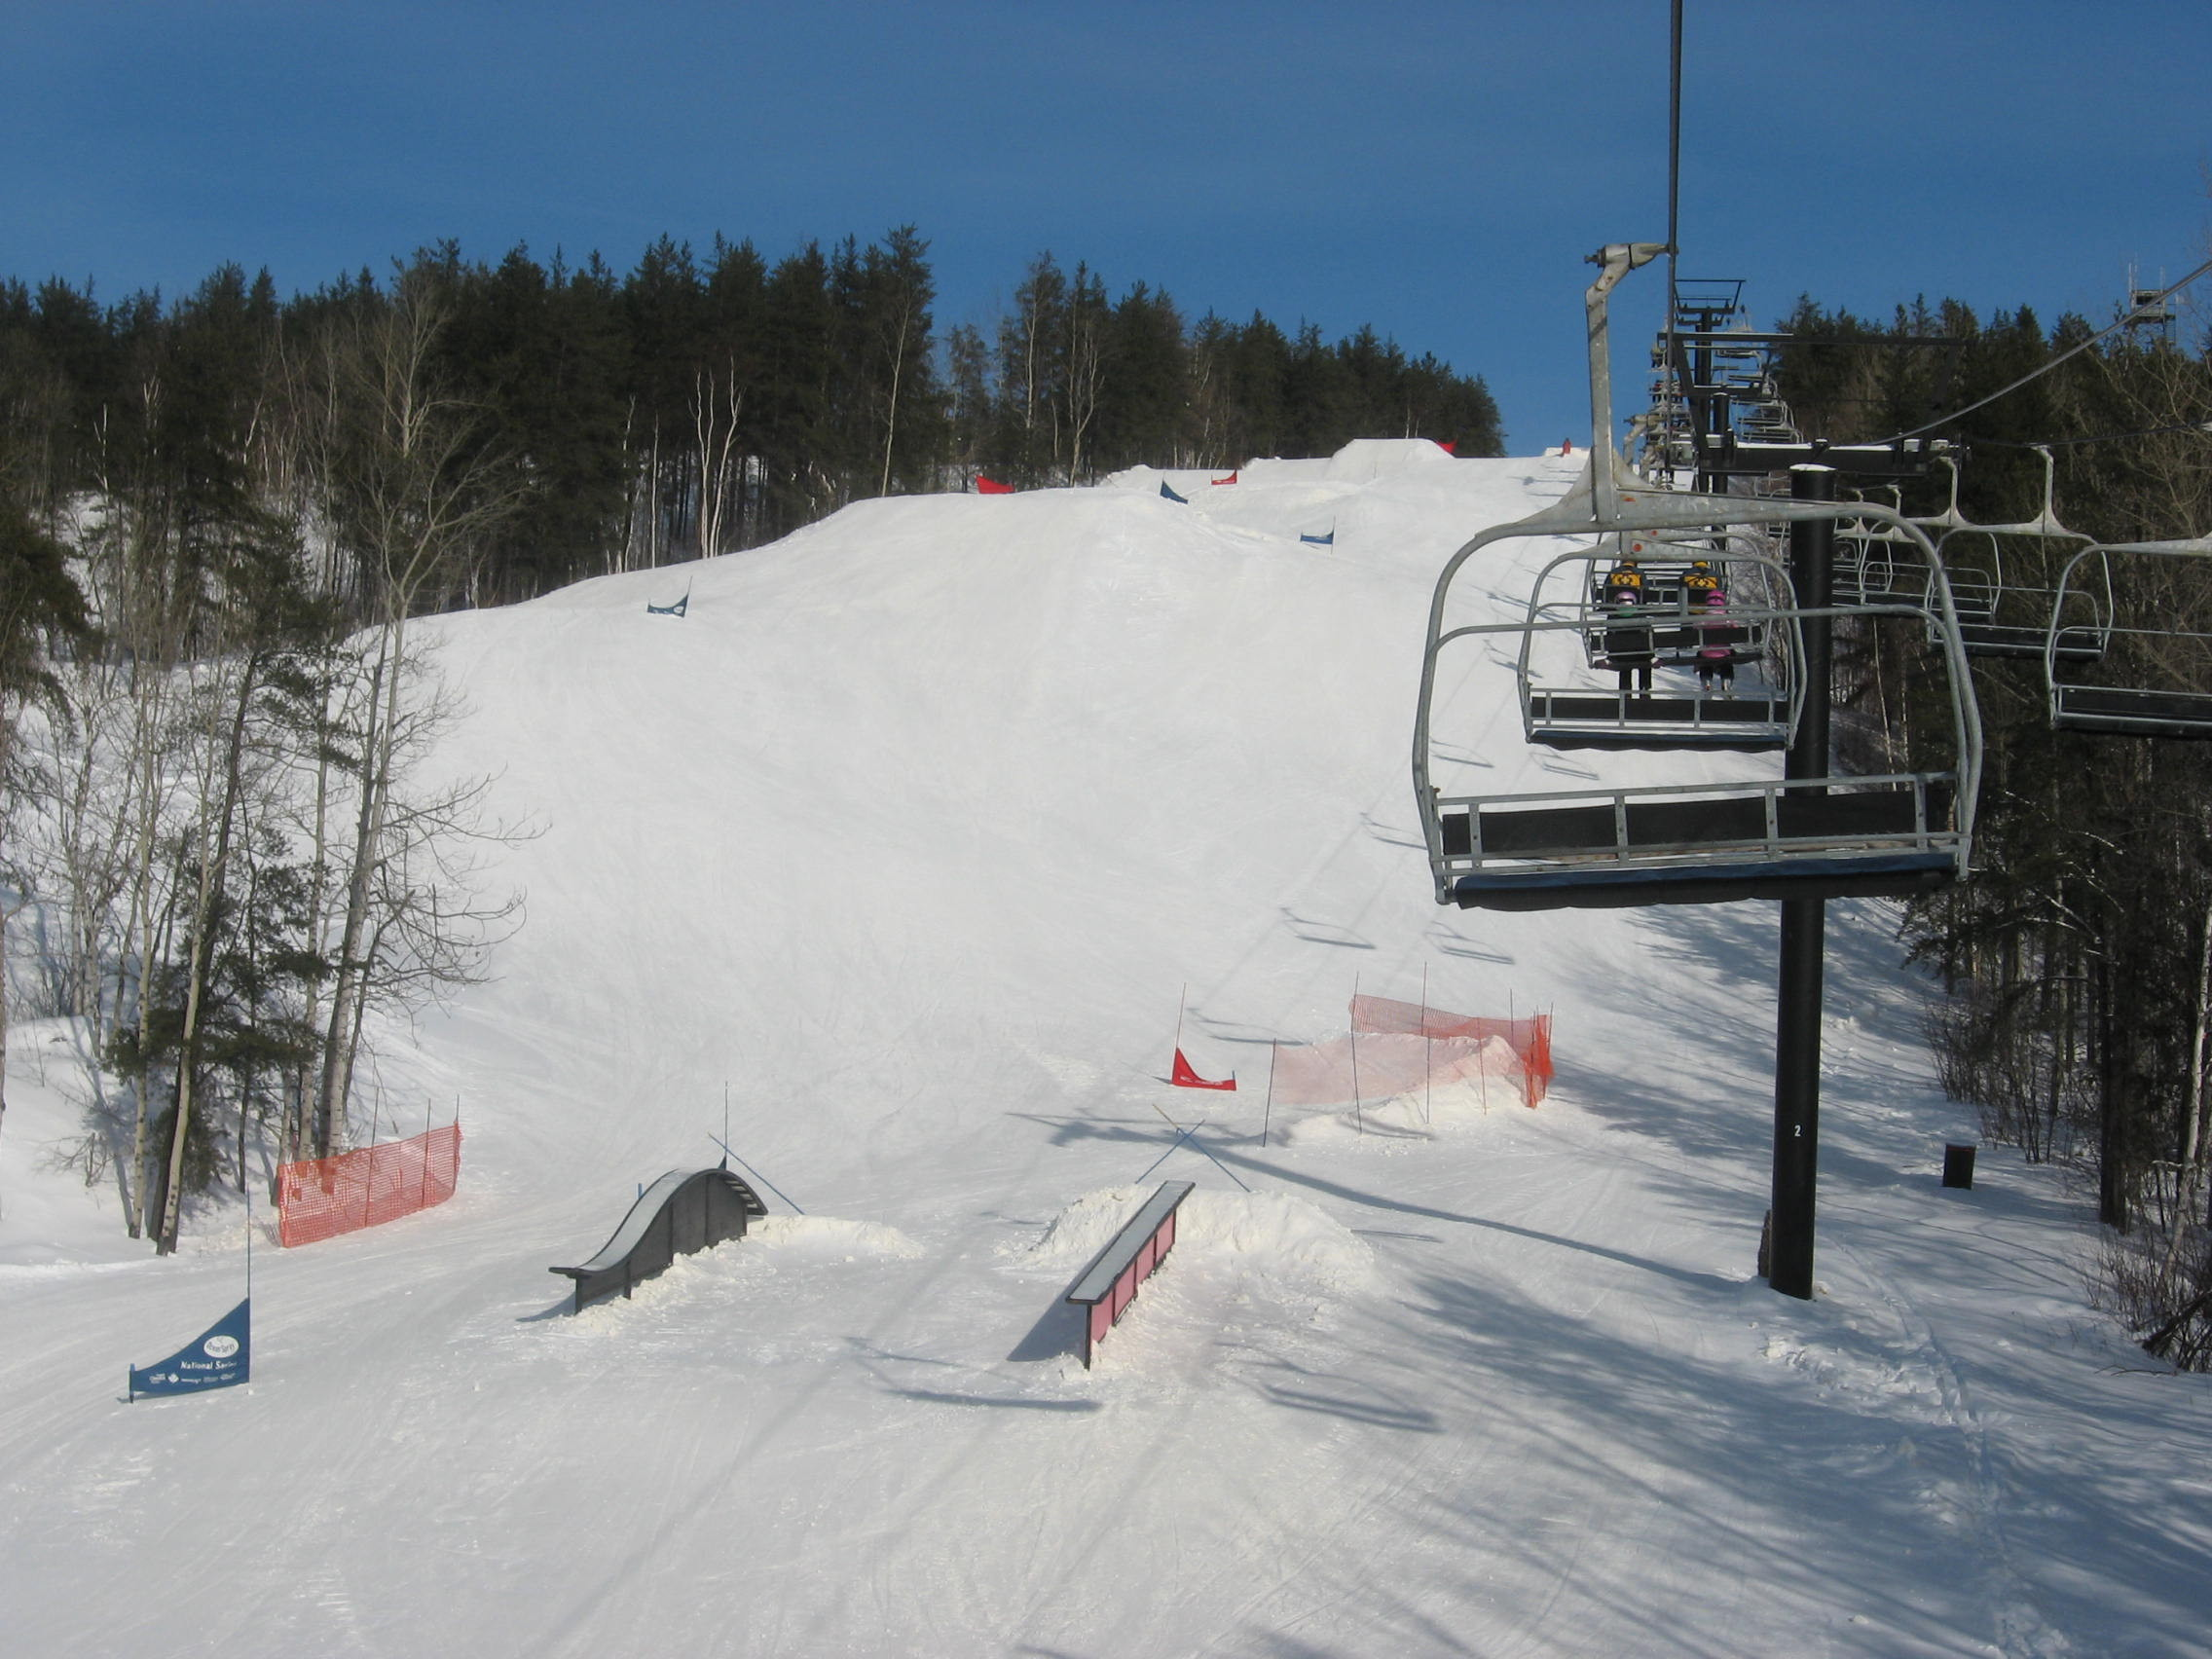 Skilift at Horseshoe Resort, Ontarioundefined